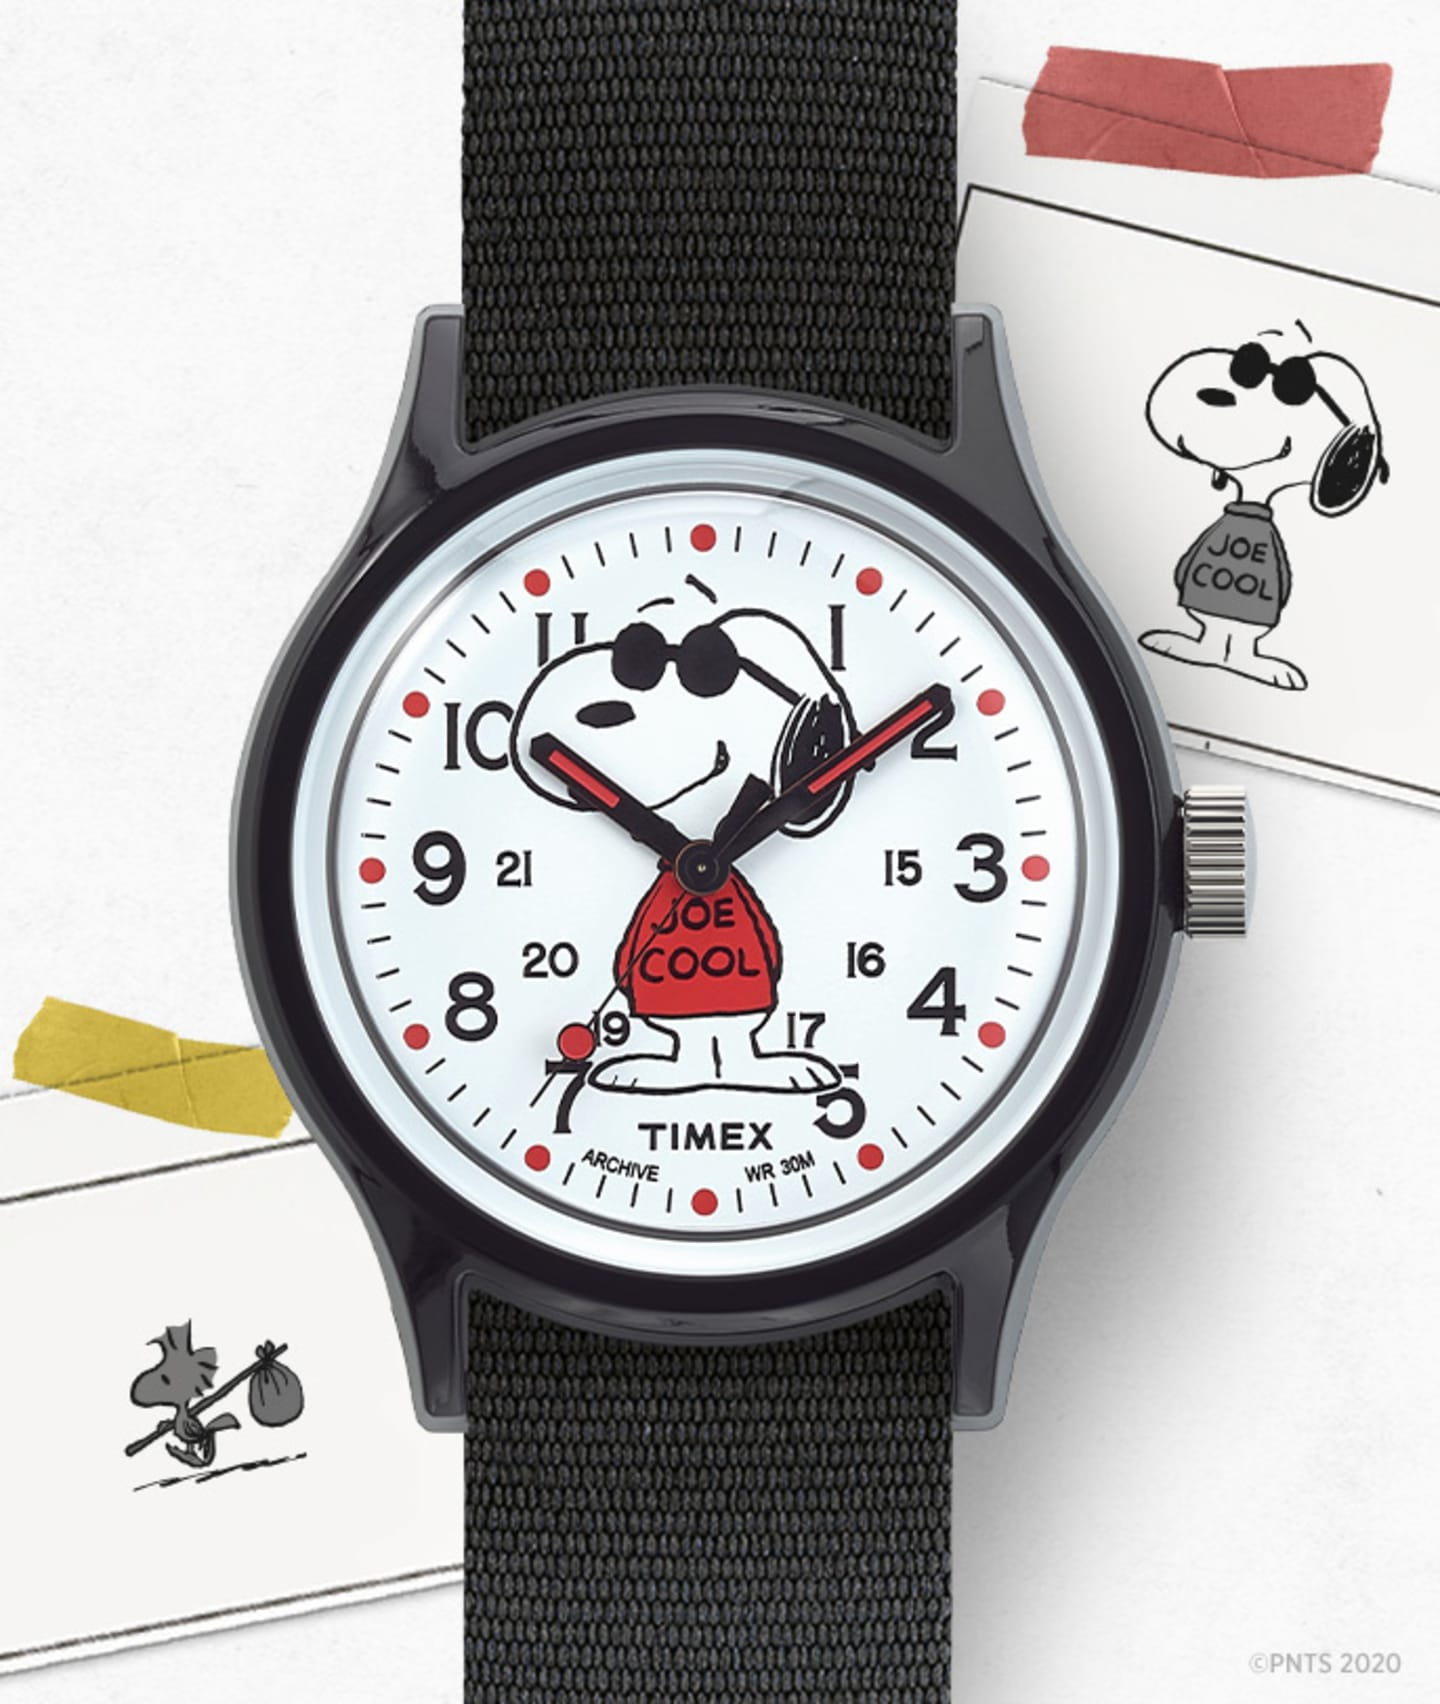 Archive MK1 Peanuts Watch.